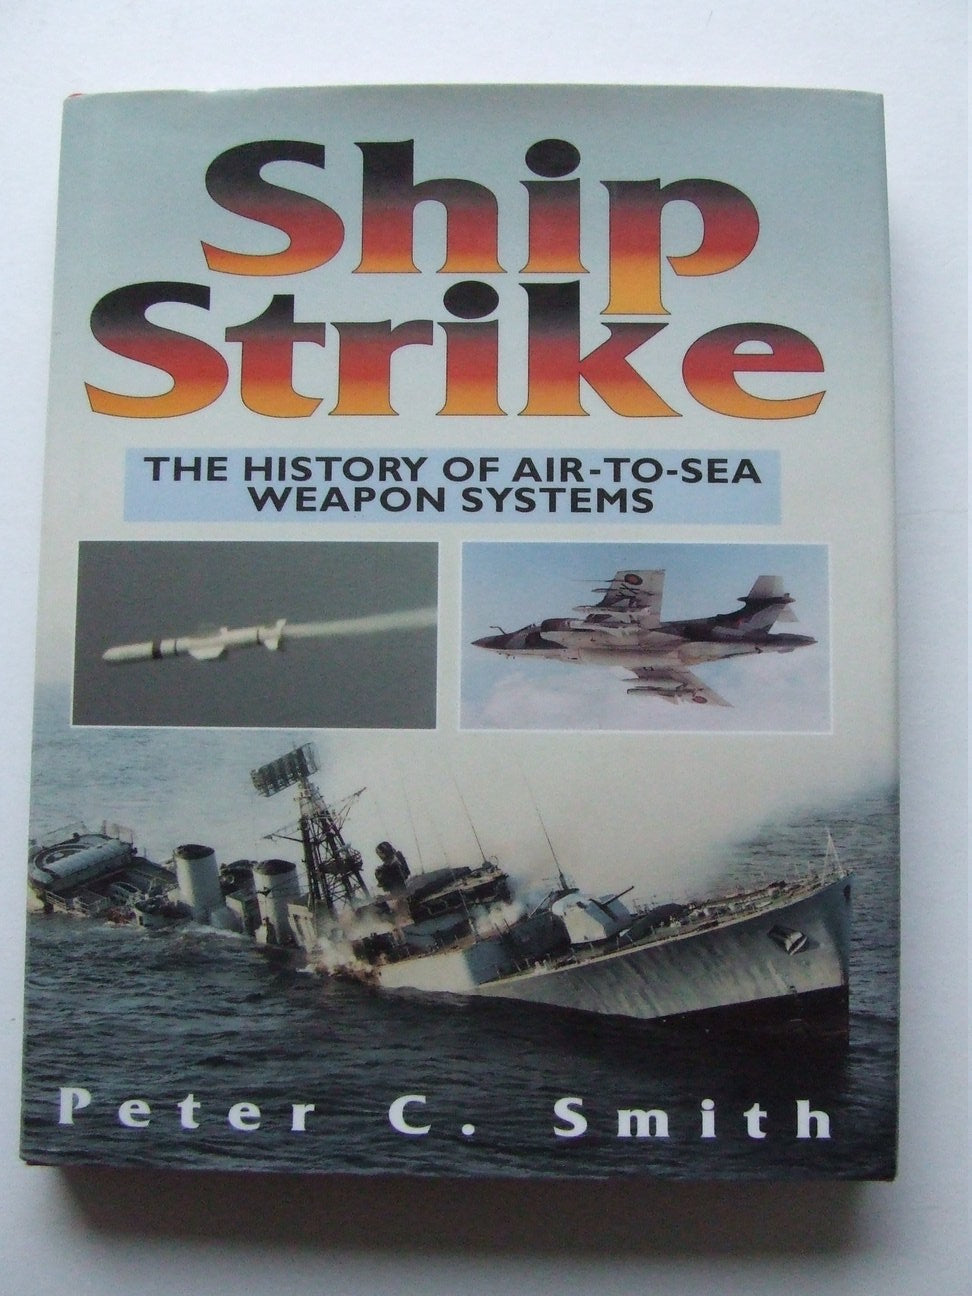 Ship Strike, the history of air-to-sea weapon systems